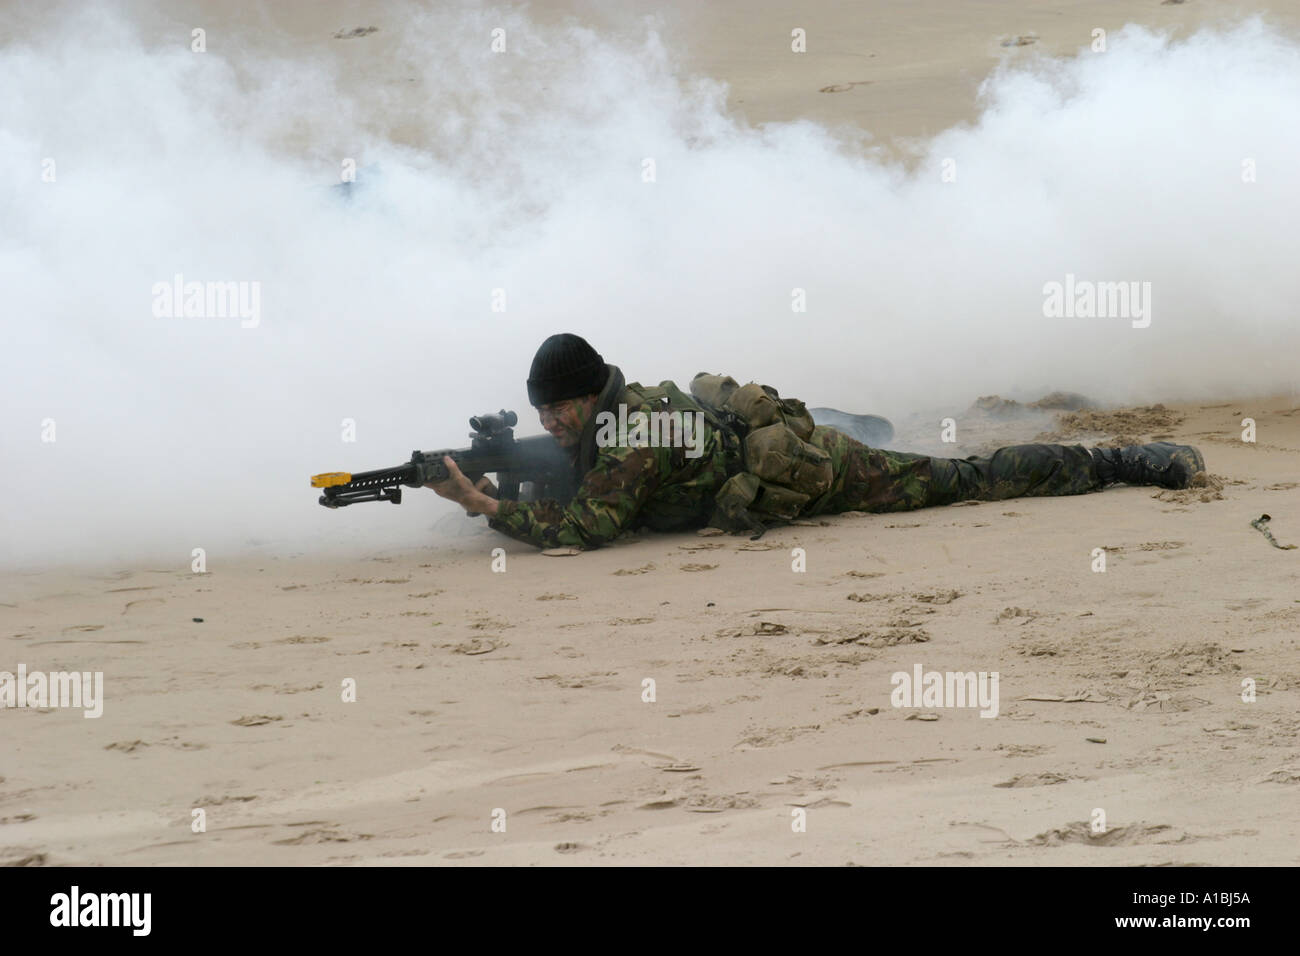 Royal Irish Regiment soldier takes up sniper position in smoke during mock beach assault exercise on Portrush beach - Stock Image